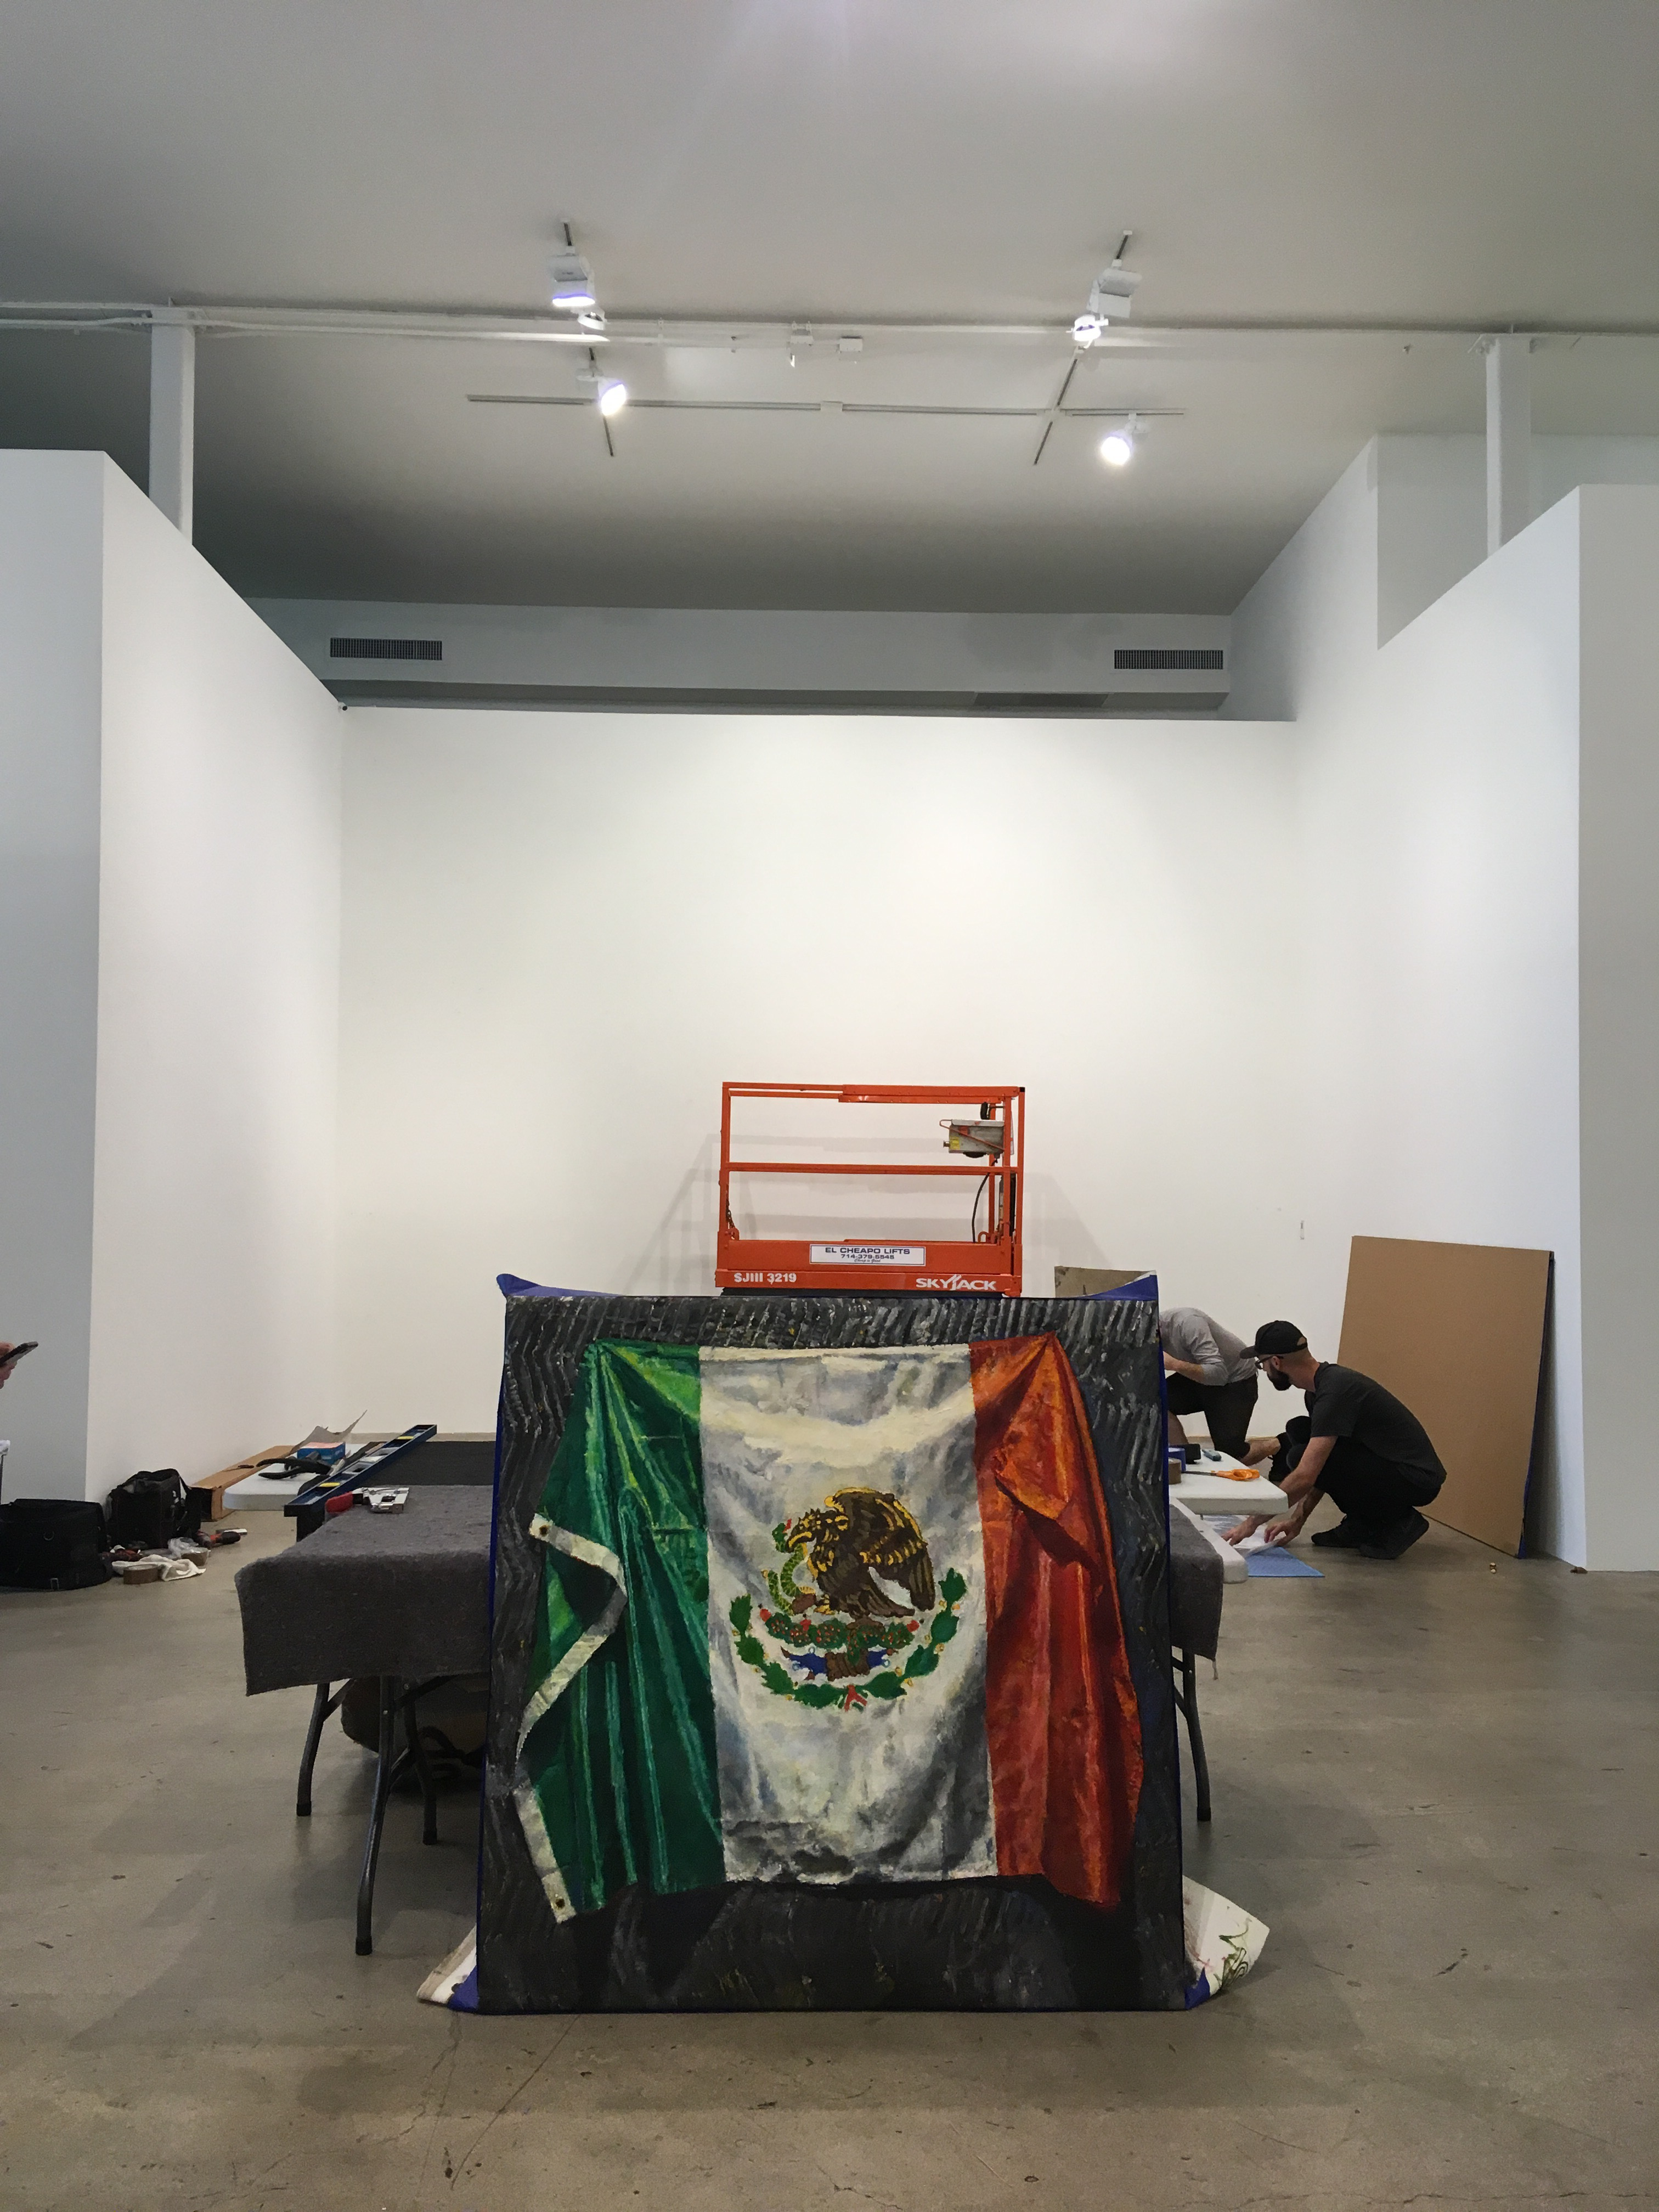 Oil painting of Mexican flag by Jesse Edwards